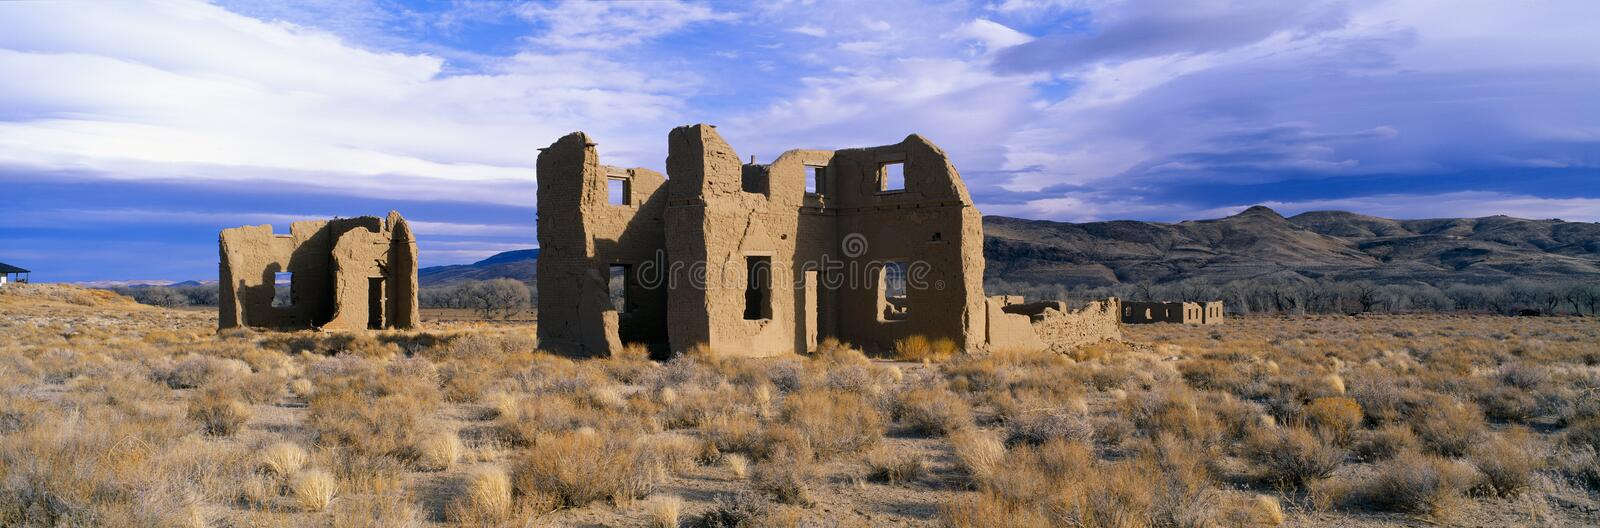 Abandoned Army Post, Circa 1860, Fort Churchill State Park, Nevada royalty free stock photos